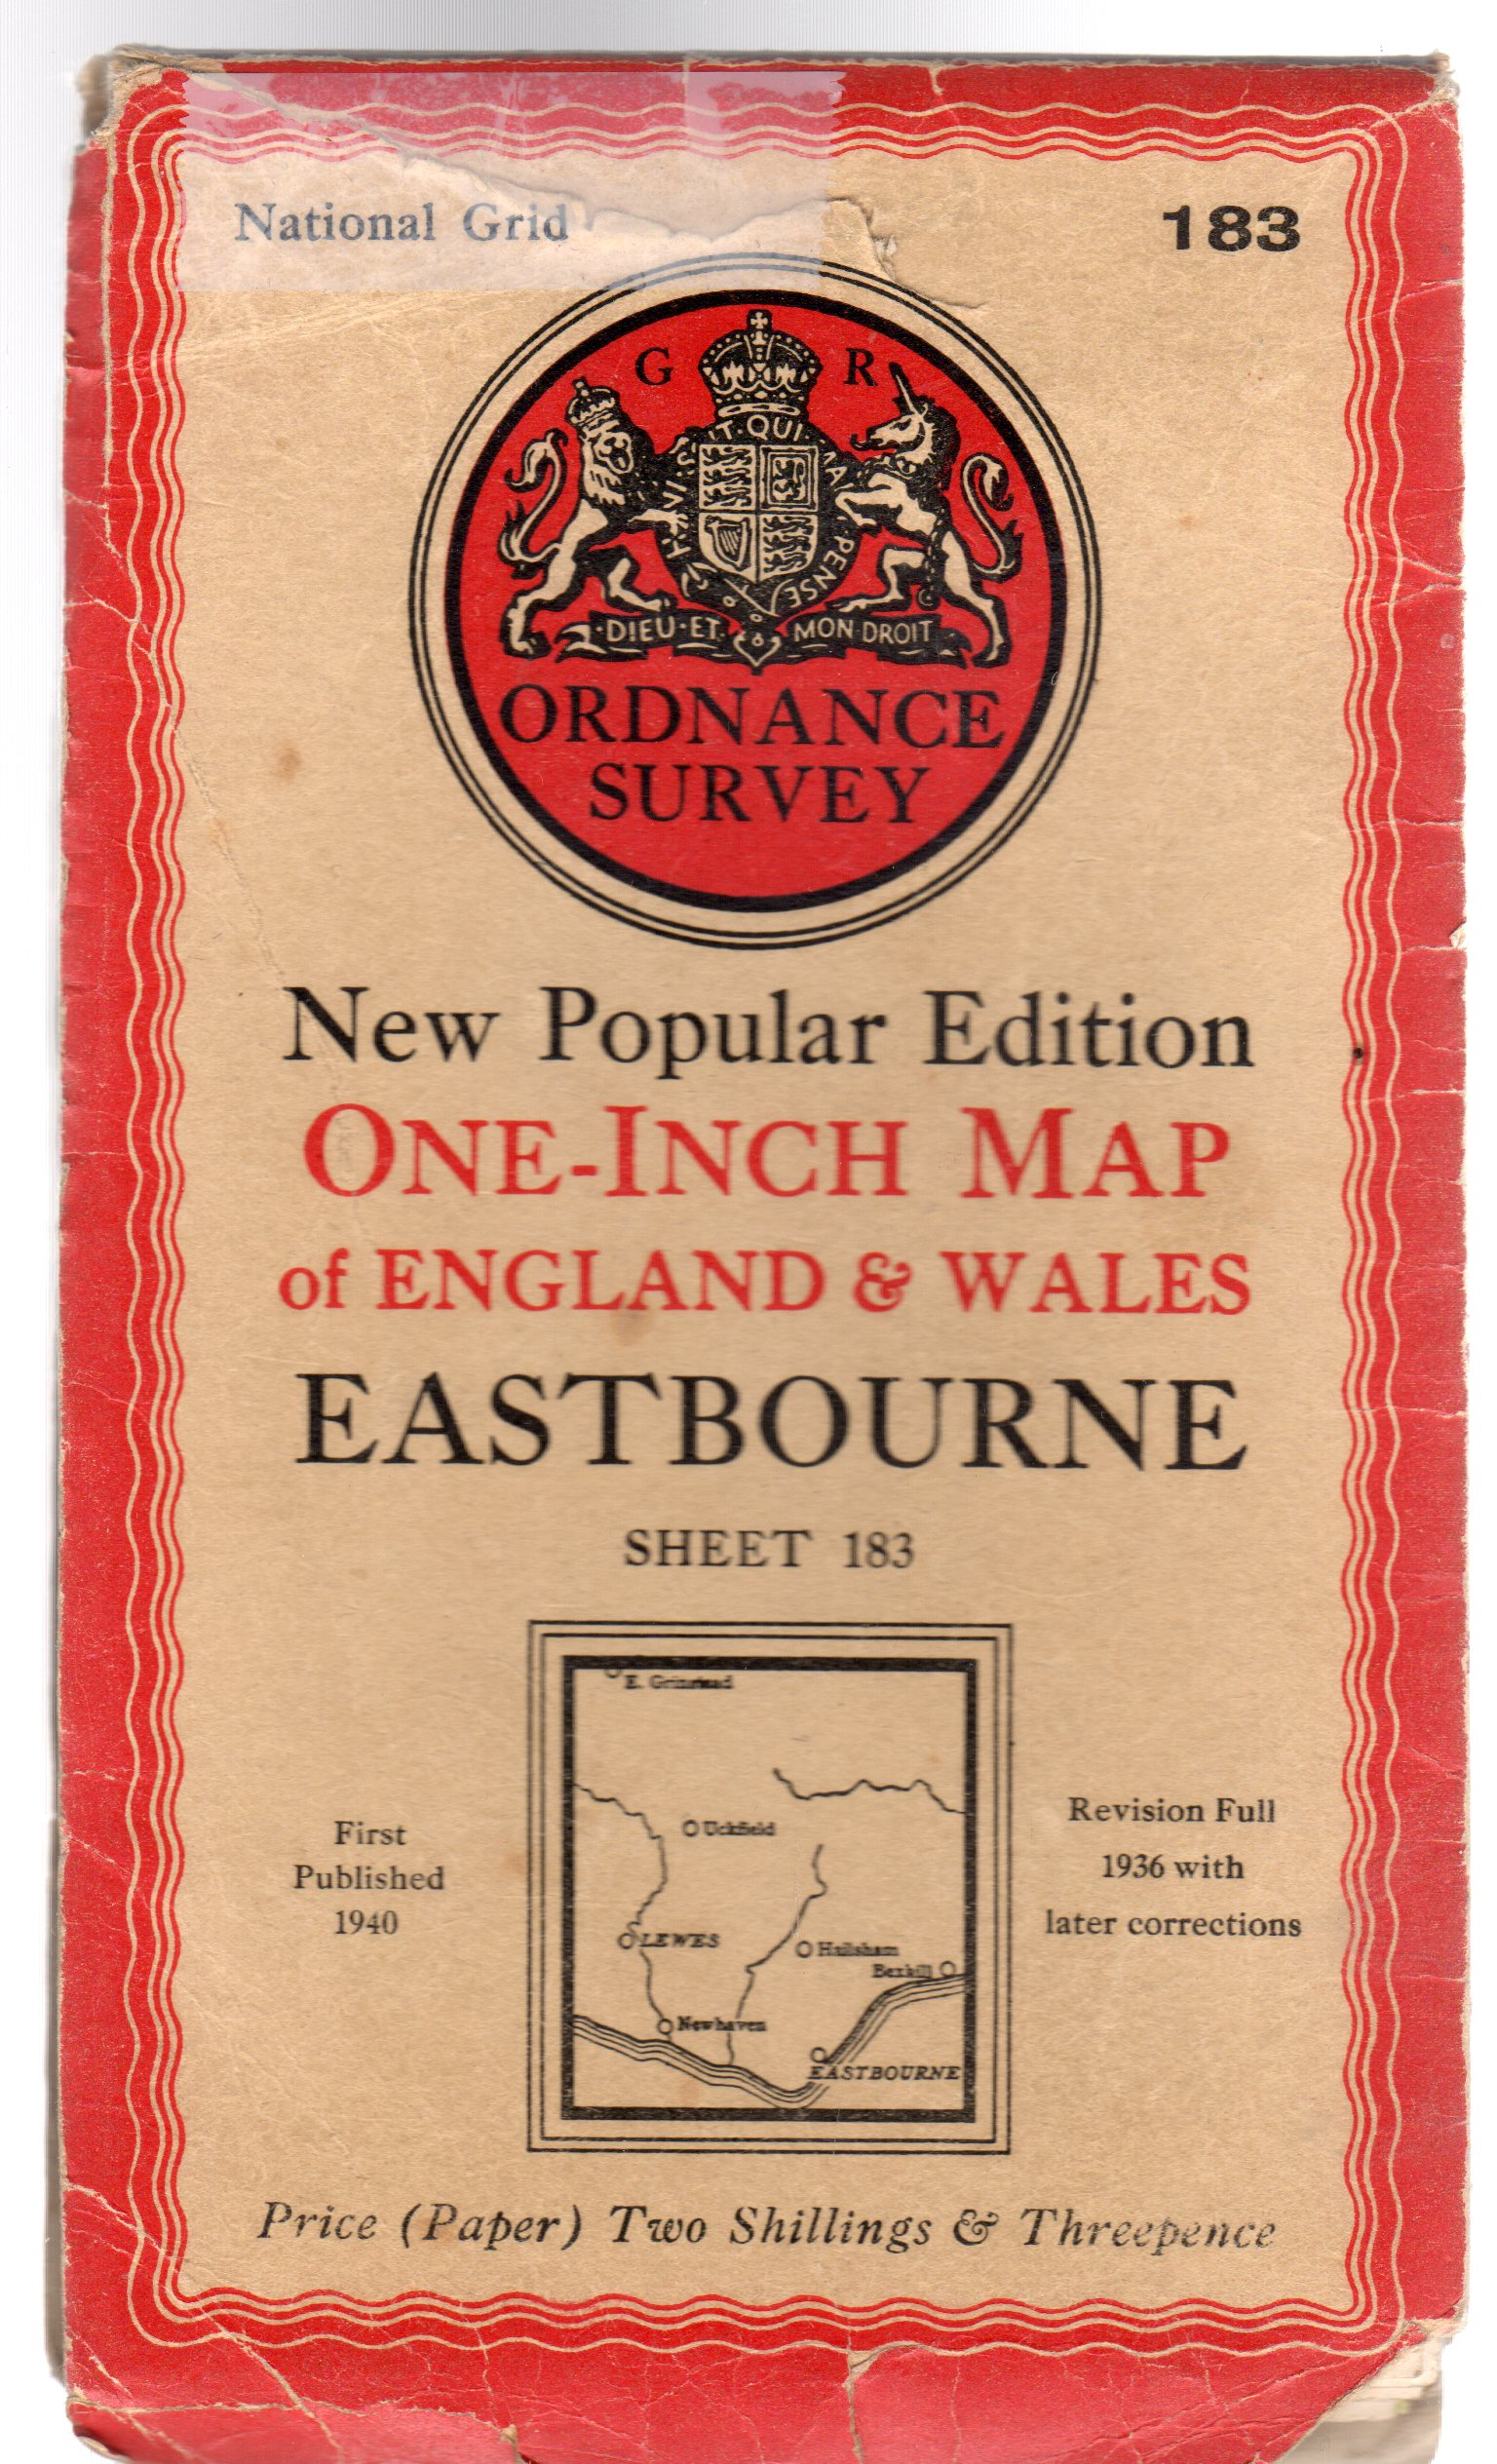 Image for Ordnance Survey  New Popular Edition One-Inch Map of England & Wales Sheet 183 Eastbourne